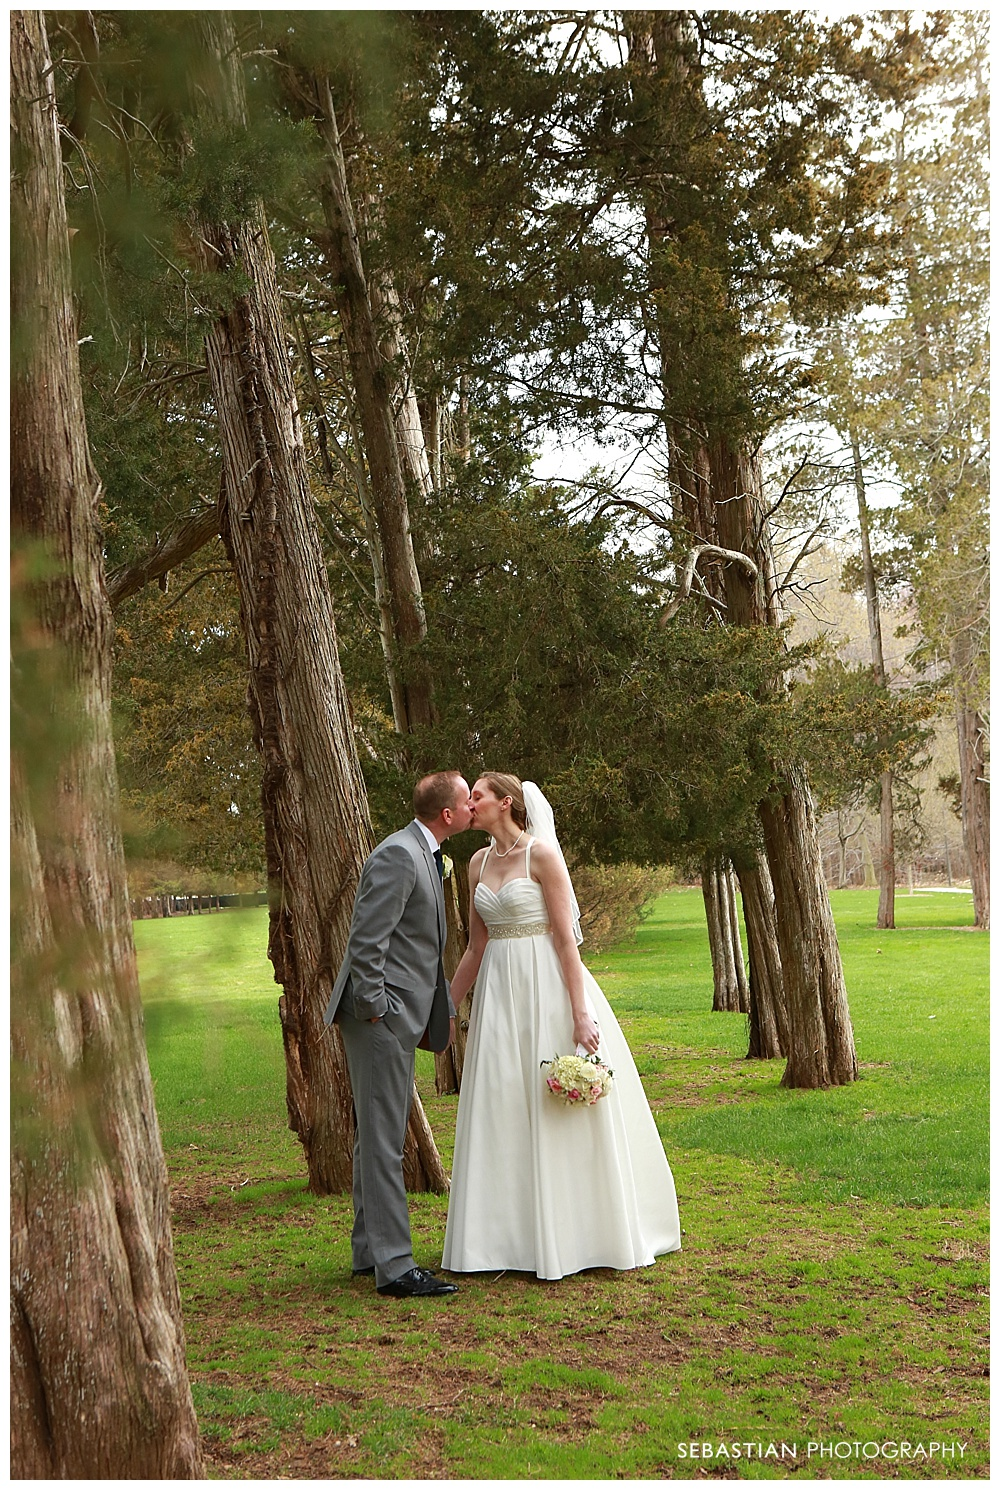 Sebastian_Photography_Wadsworth_Mansion_Middletown_CT_Wedding_Portraits_Spring16.jpg